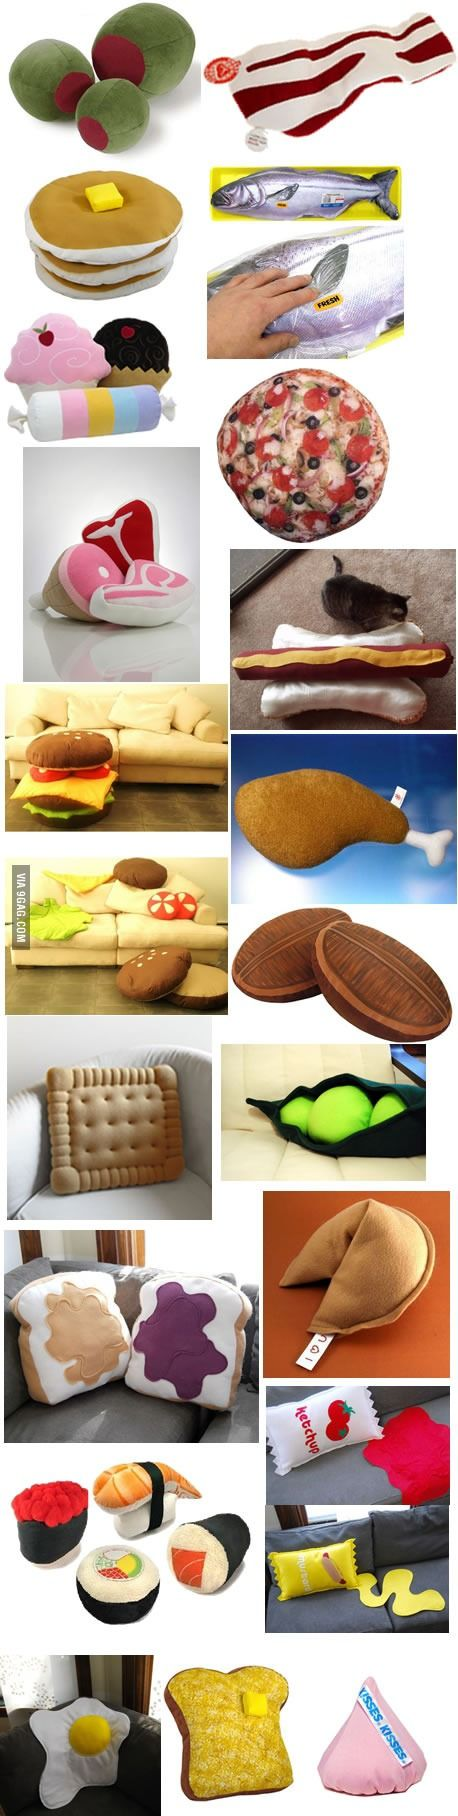 Food Pillows my favorite.                                                       …